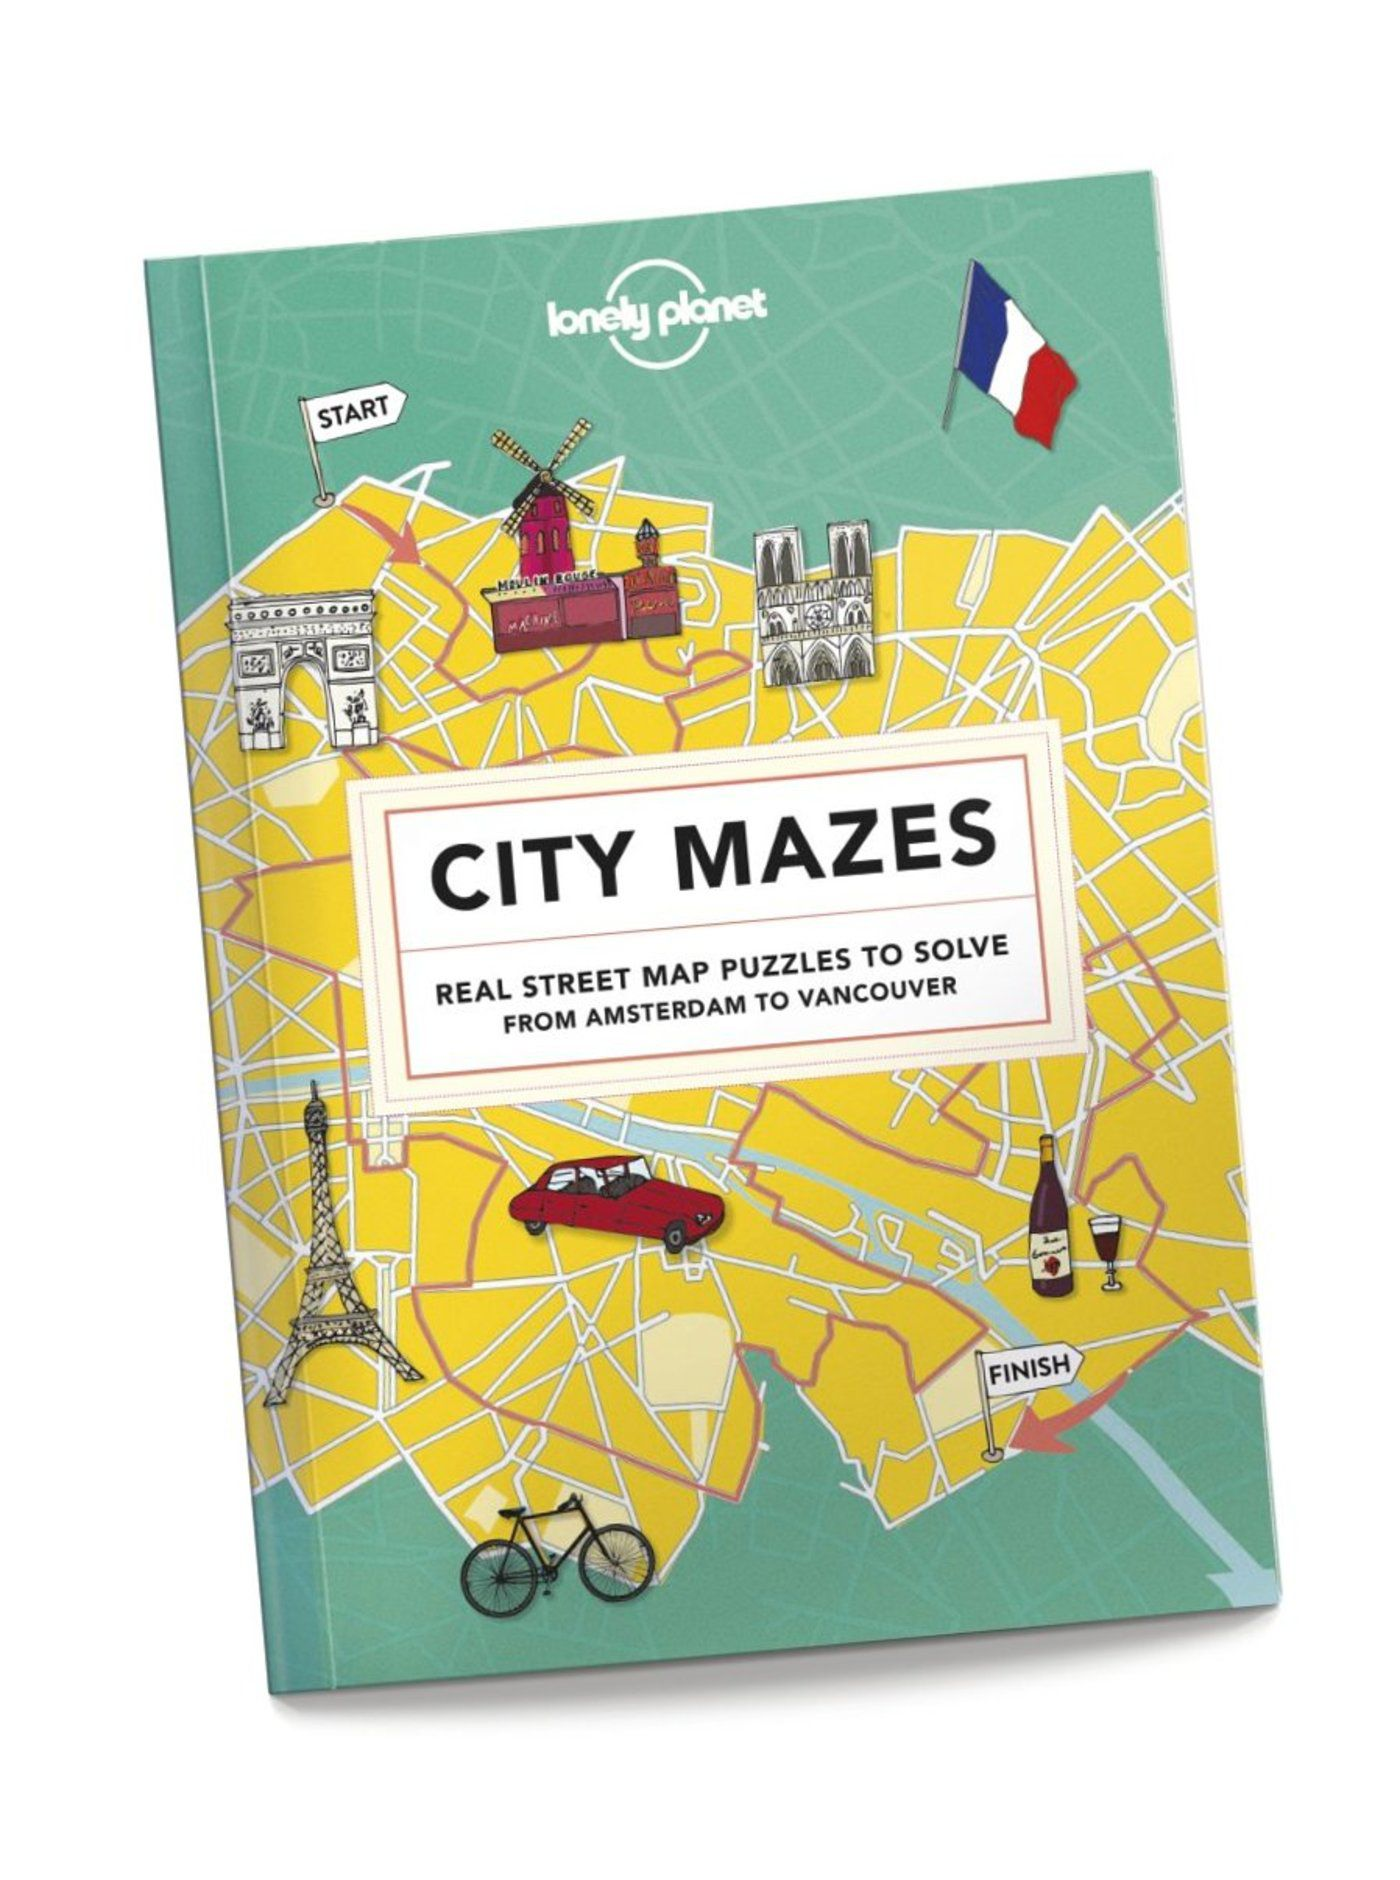 Puzzle clipart alone time. City mazes